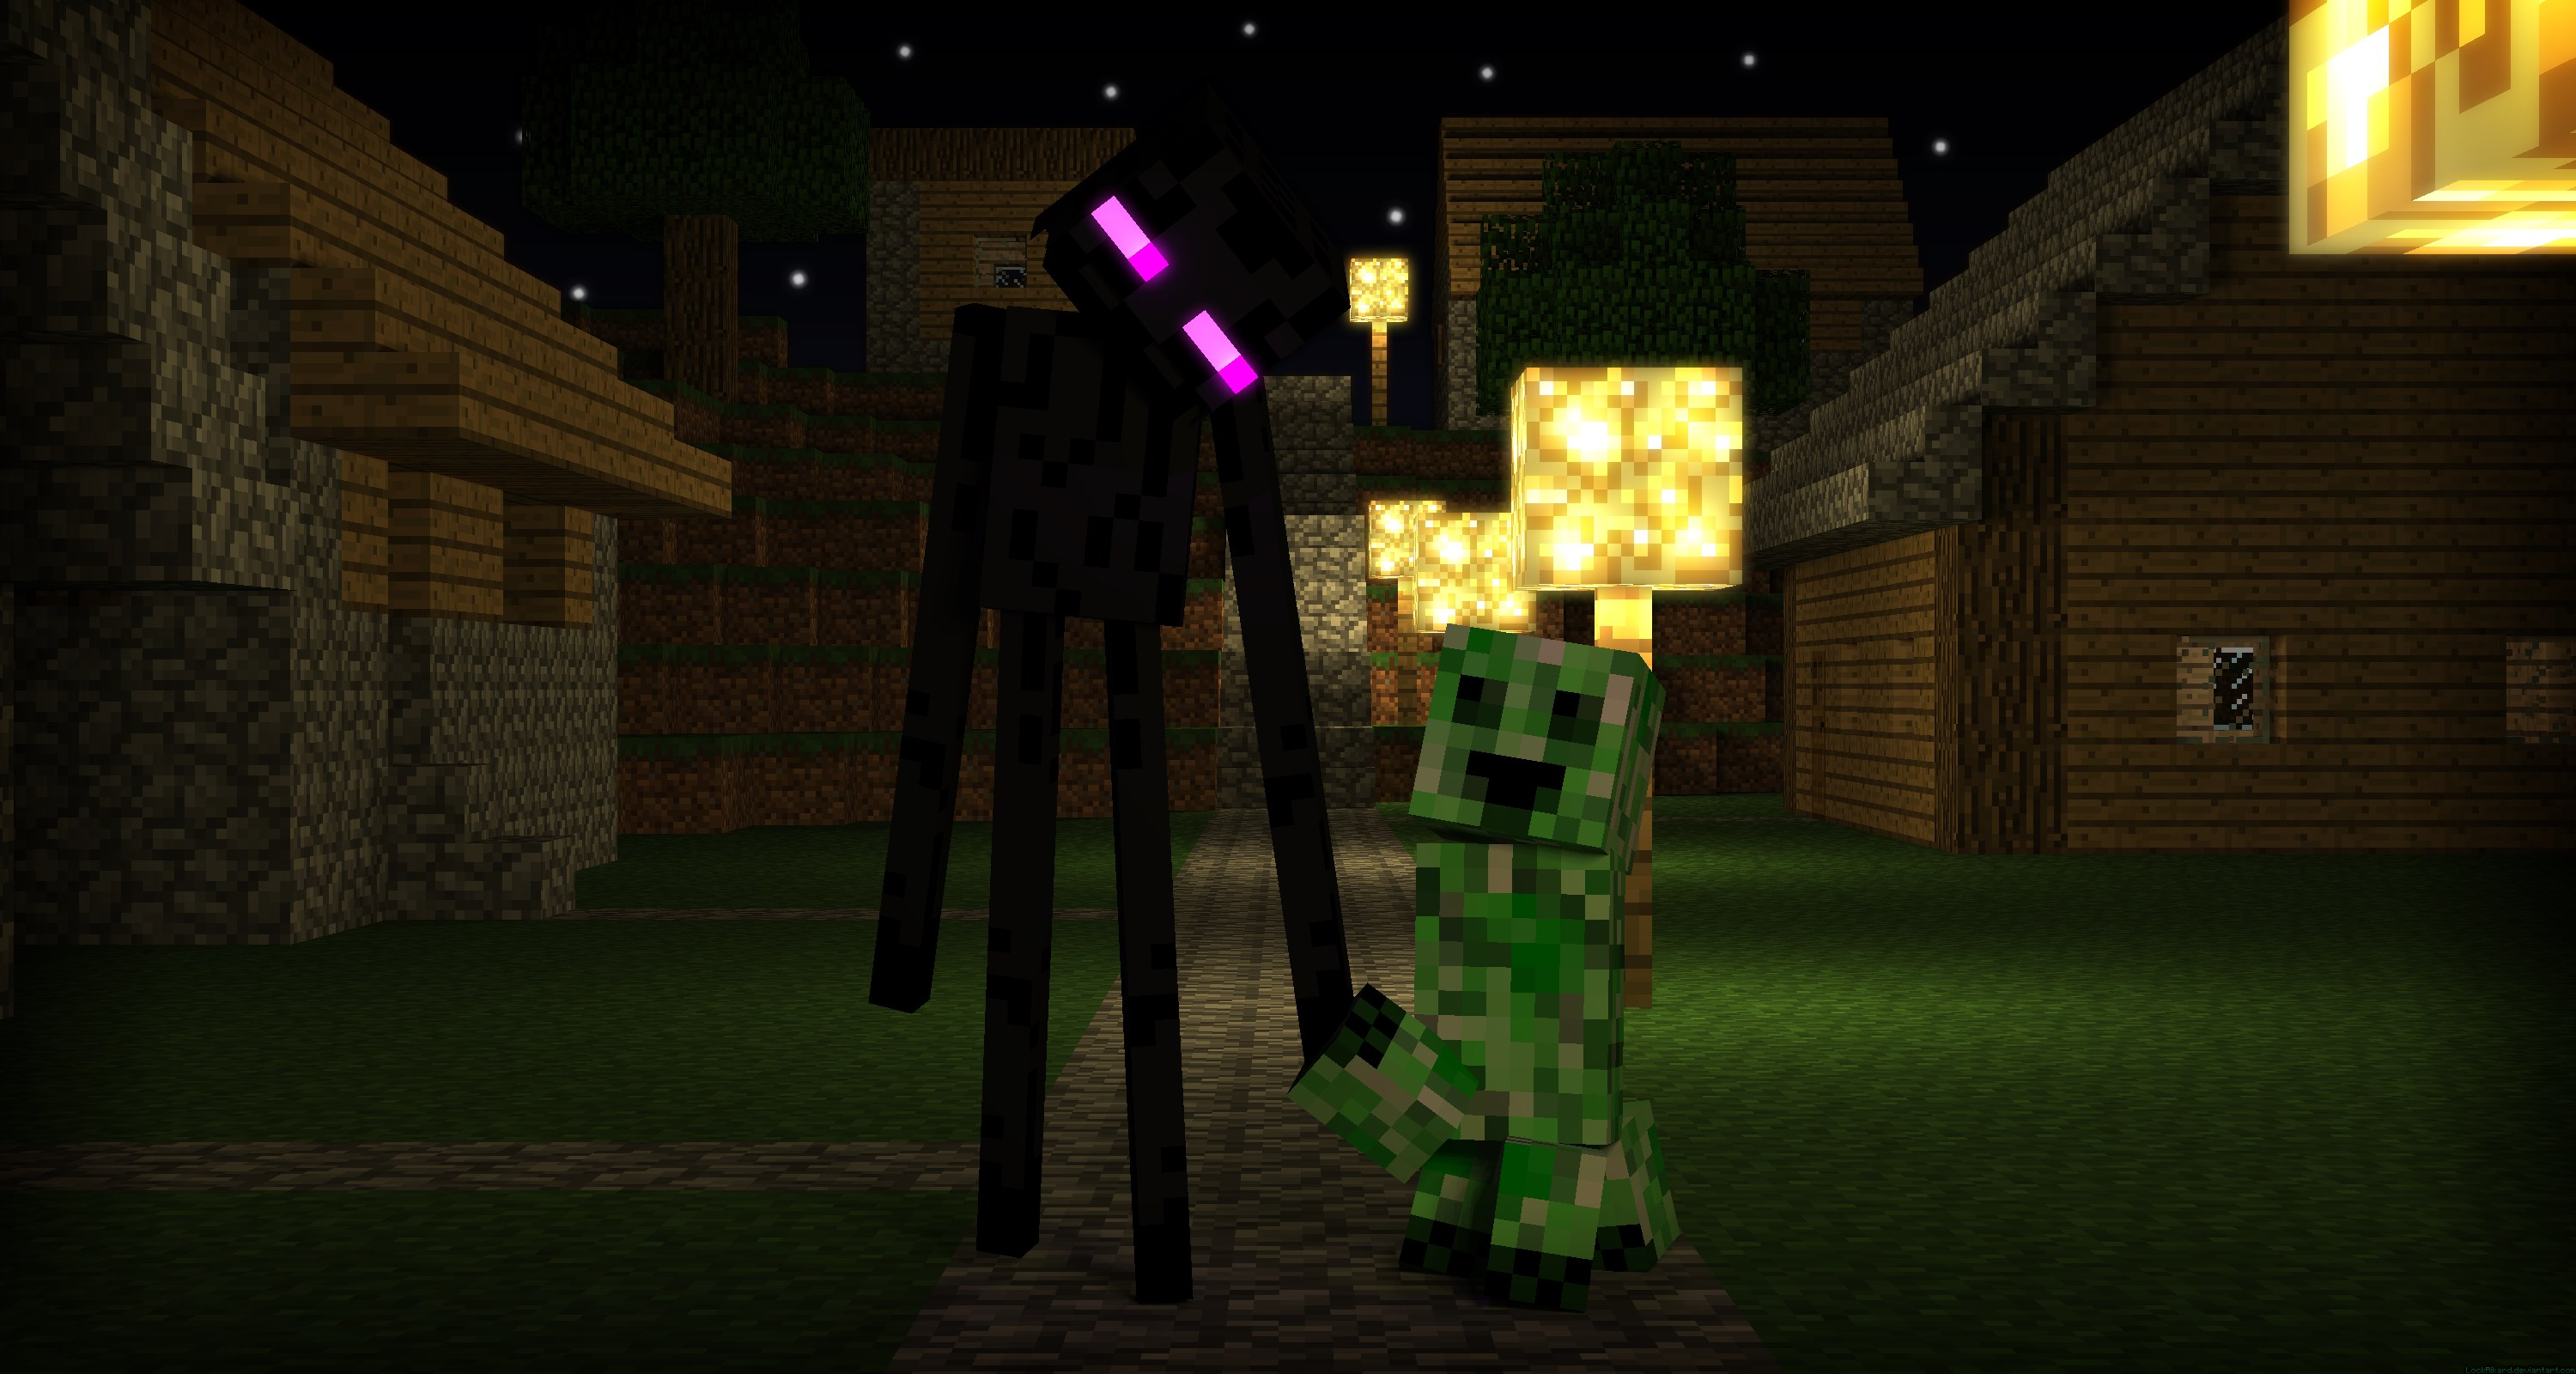 enderman minecraft wallpaper wolf - photo #32